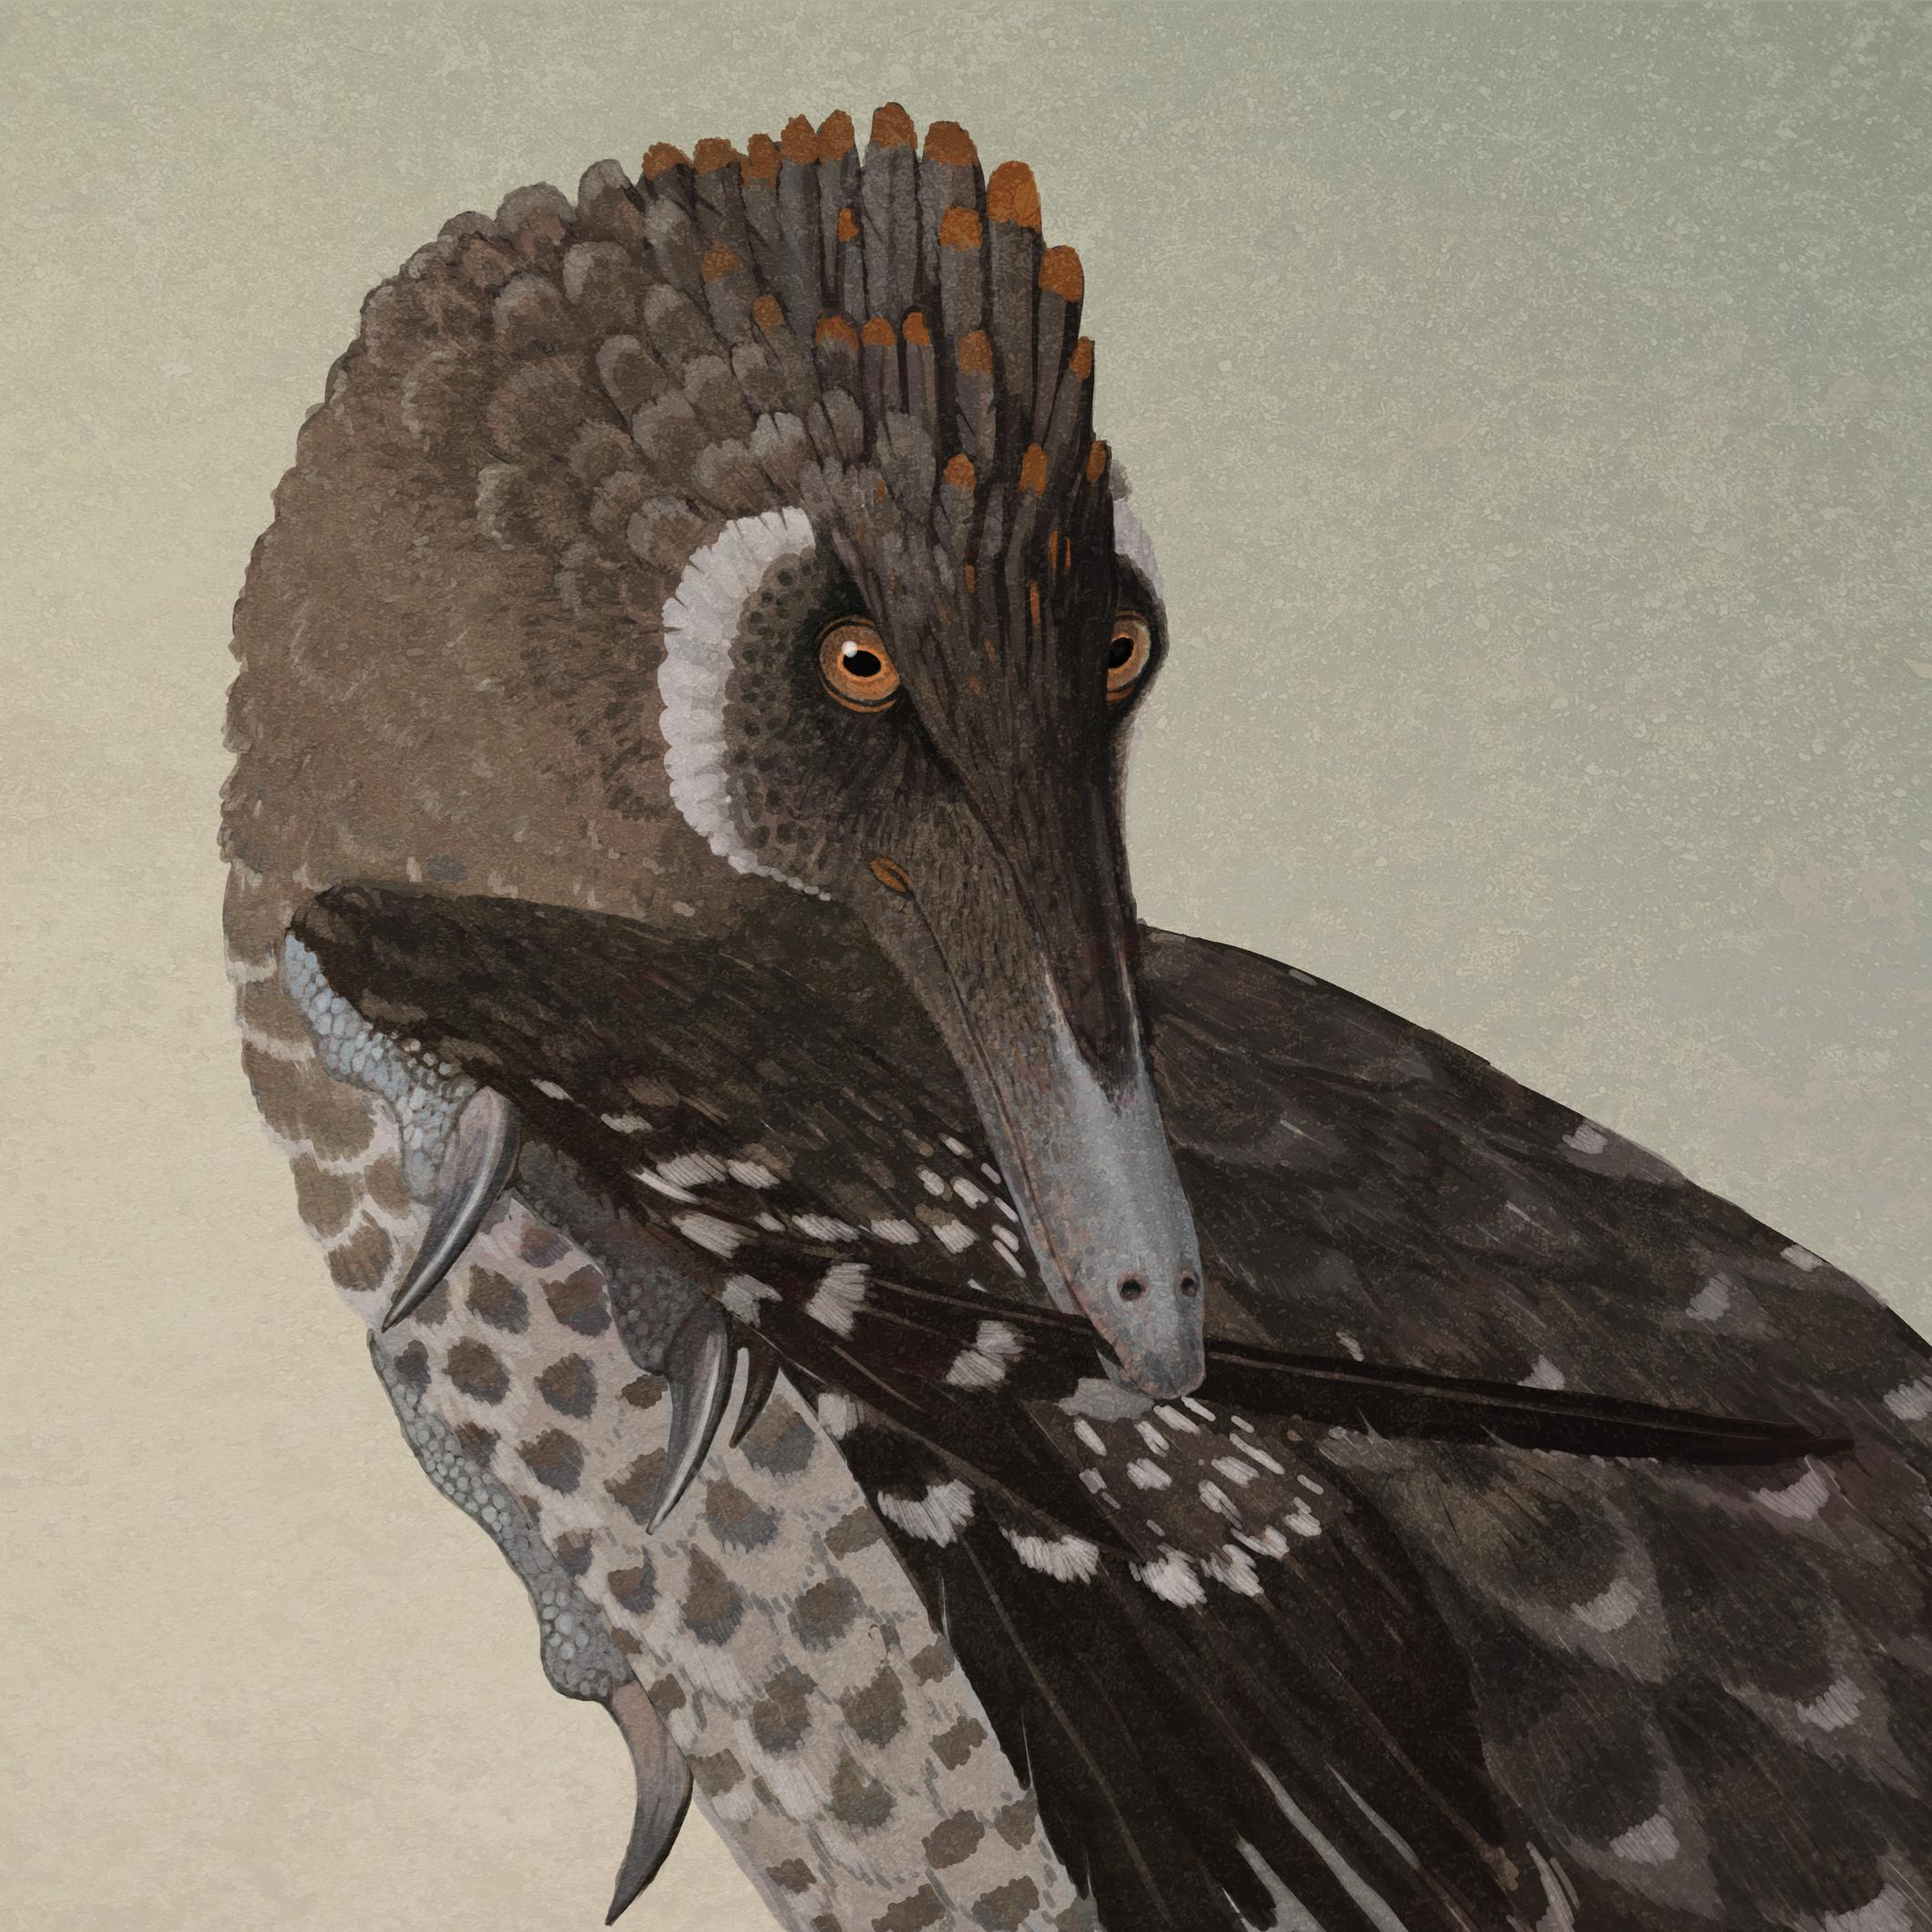 velociraptor mongoliensis by john conway